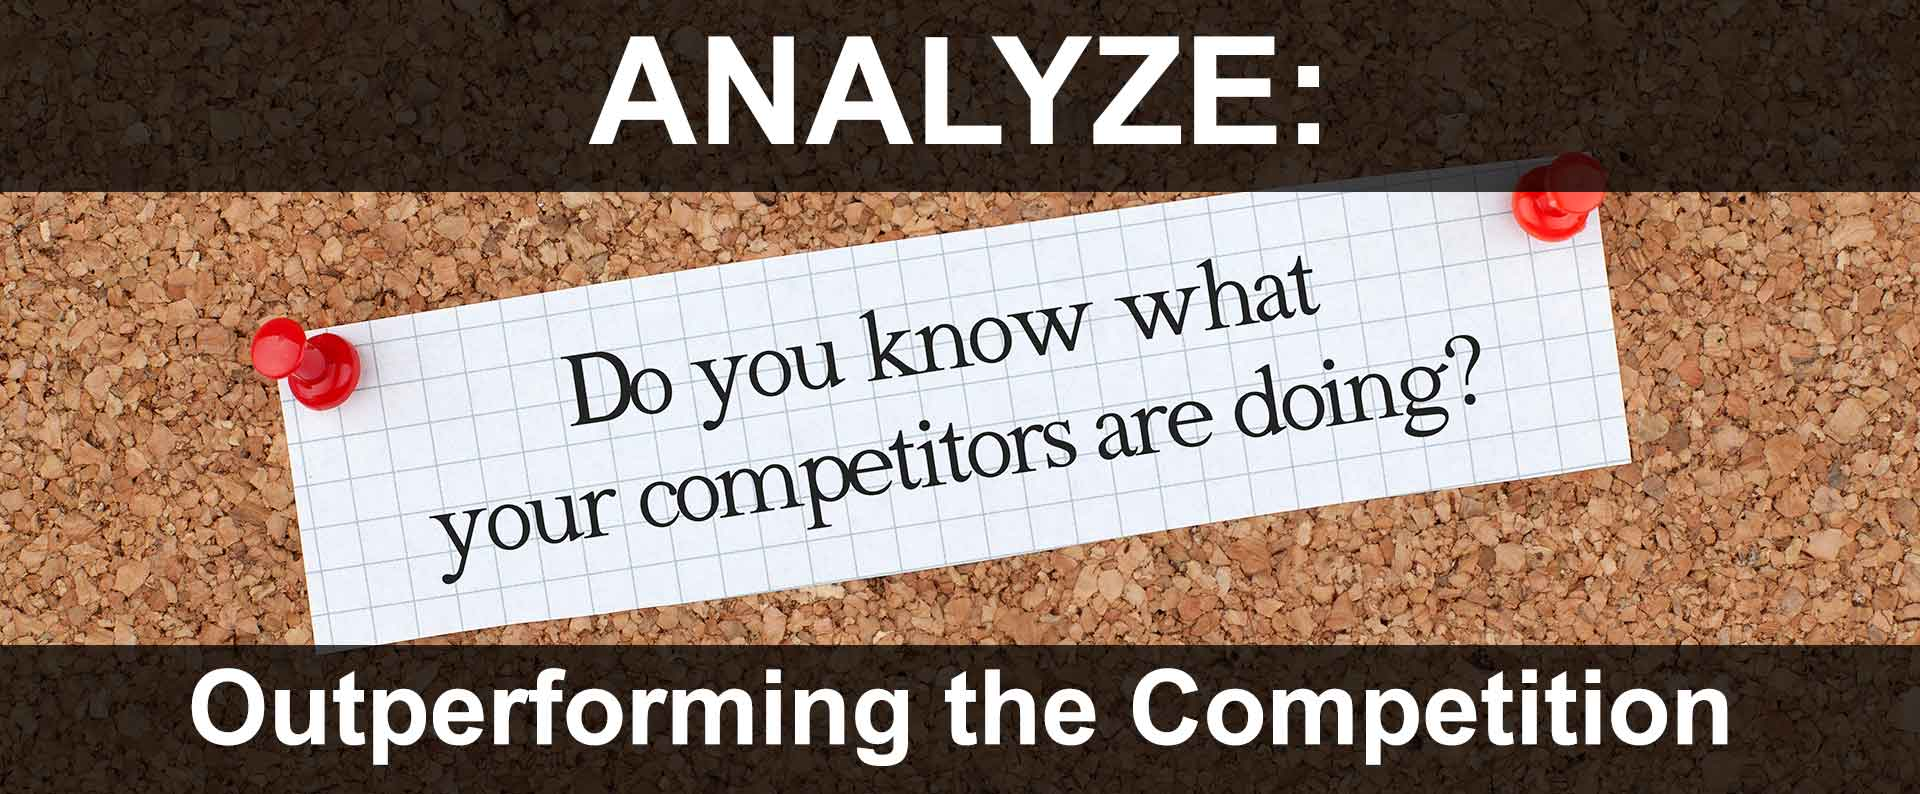 Comparing Web, Marketing, & Content Strategies to Successful Competitors